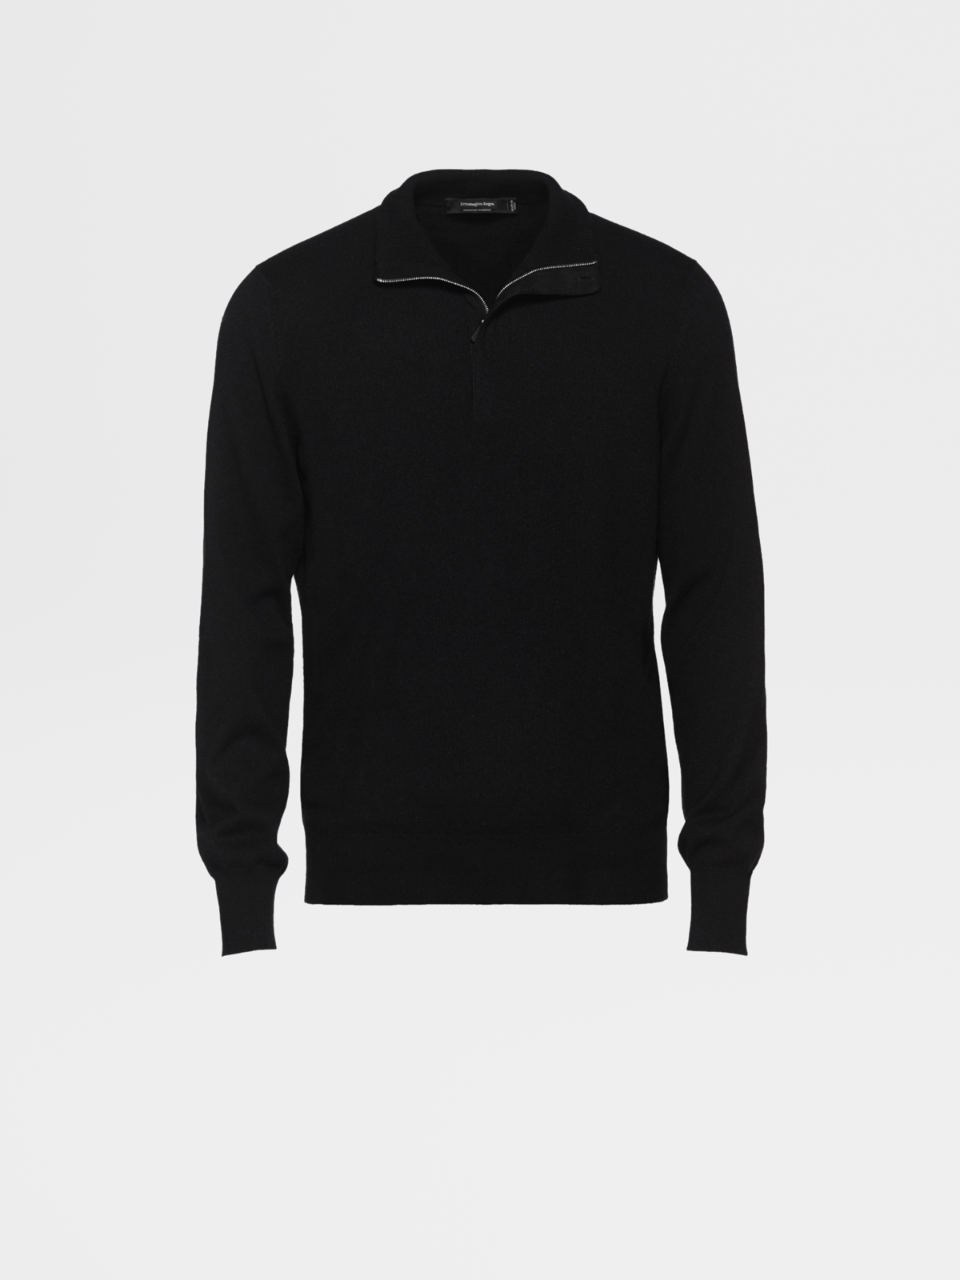 Black Premium Cashmere Sweater